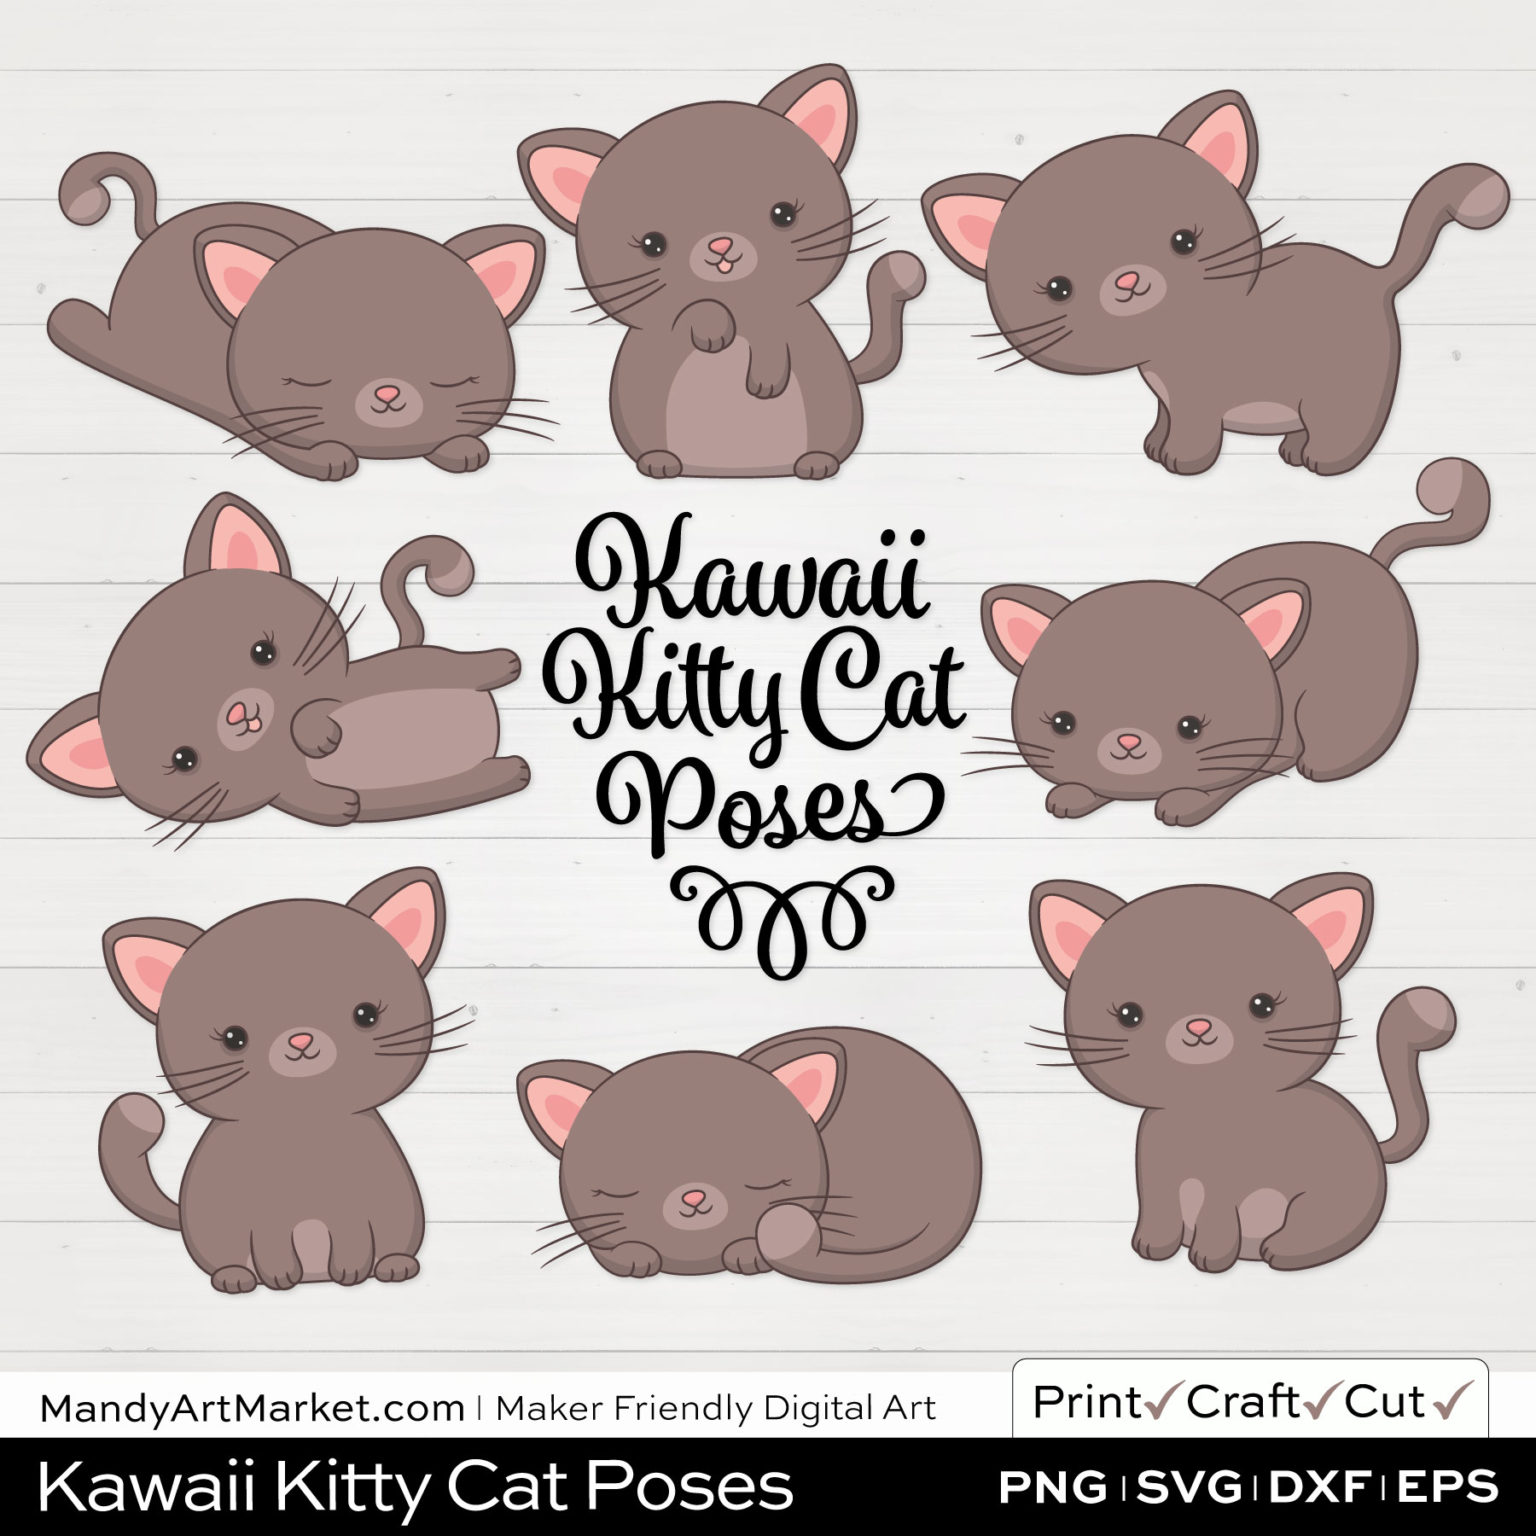 Barnboard Brown Kawaii Kitty Cat Poses Clipart on White Background